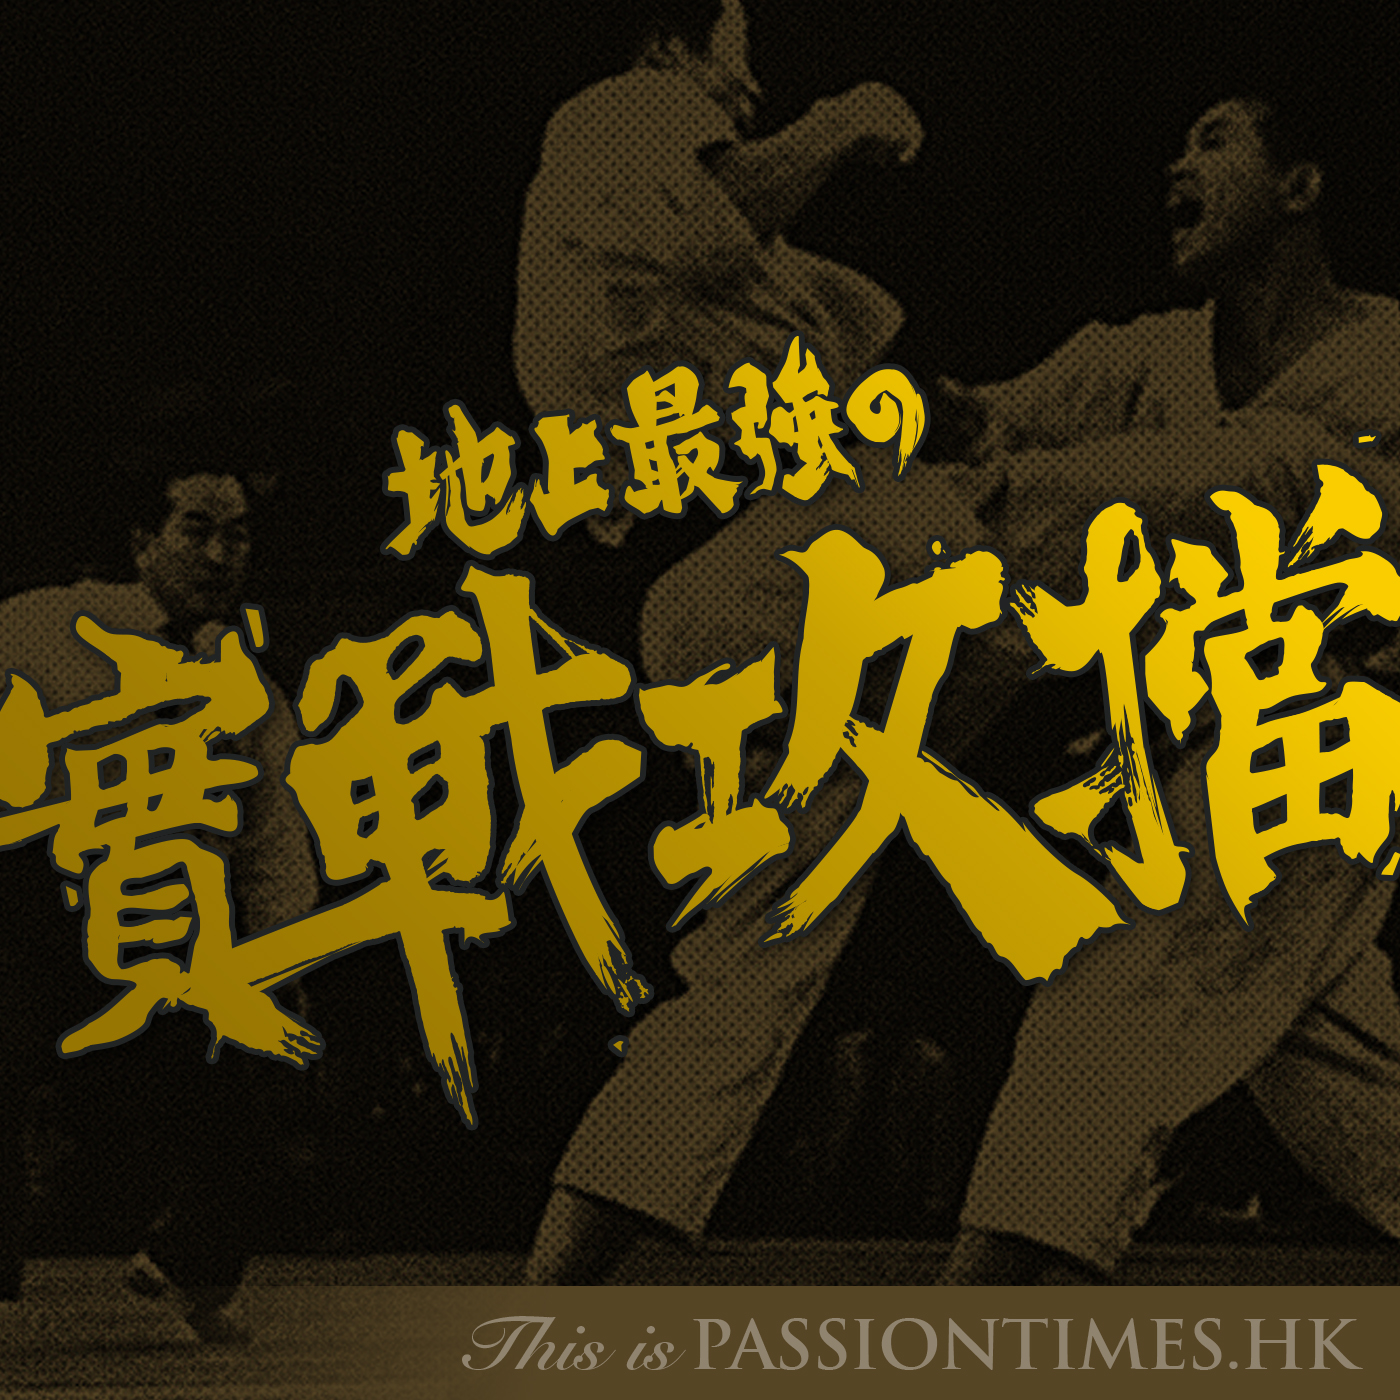 實戰攻擋 - PassionTimes Podcast (HD Video)